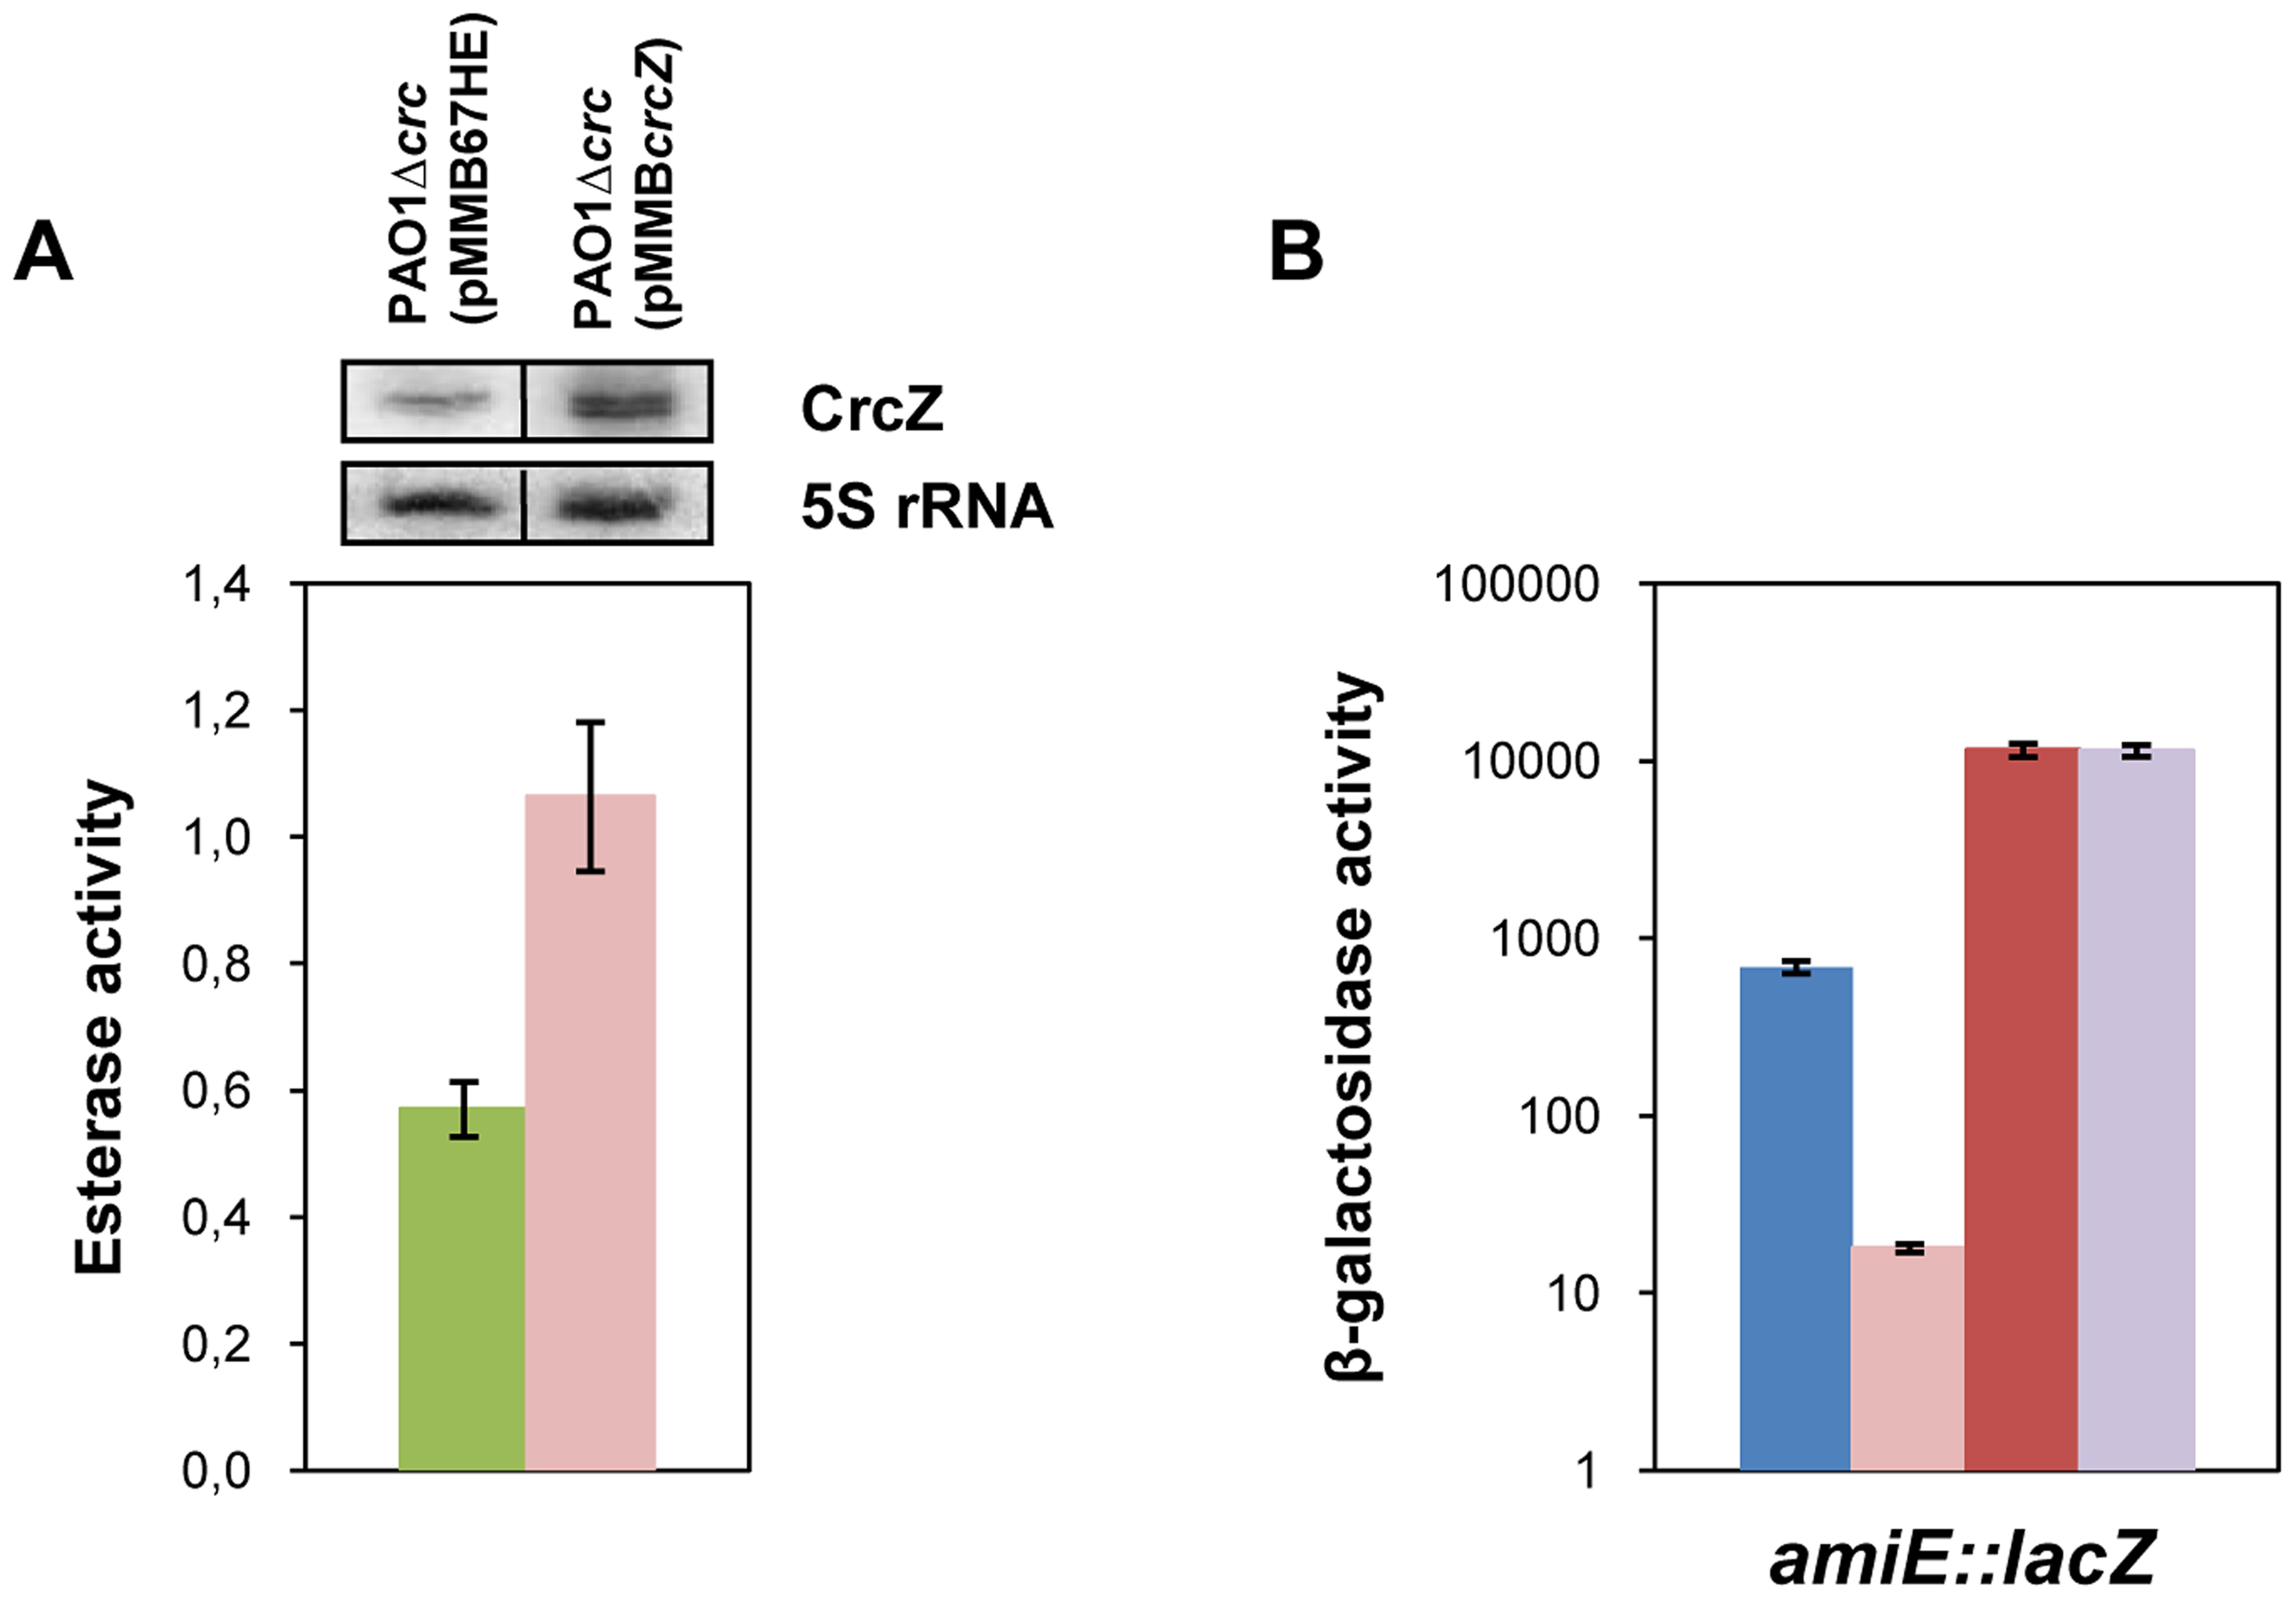 CrcZ relieves repression by Hfq <i>in vivo</i>.